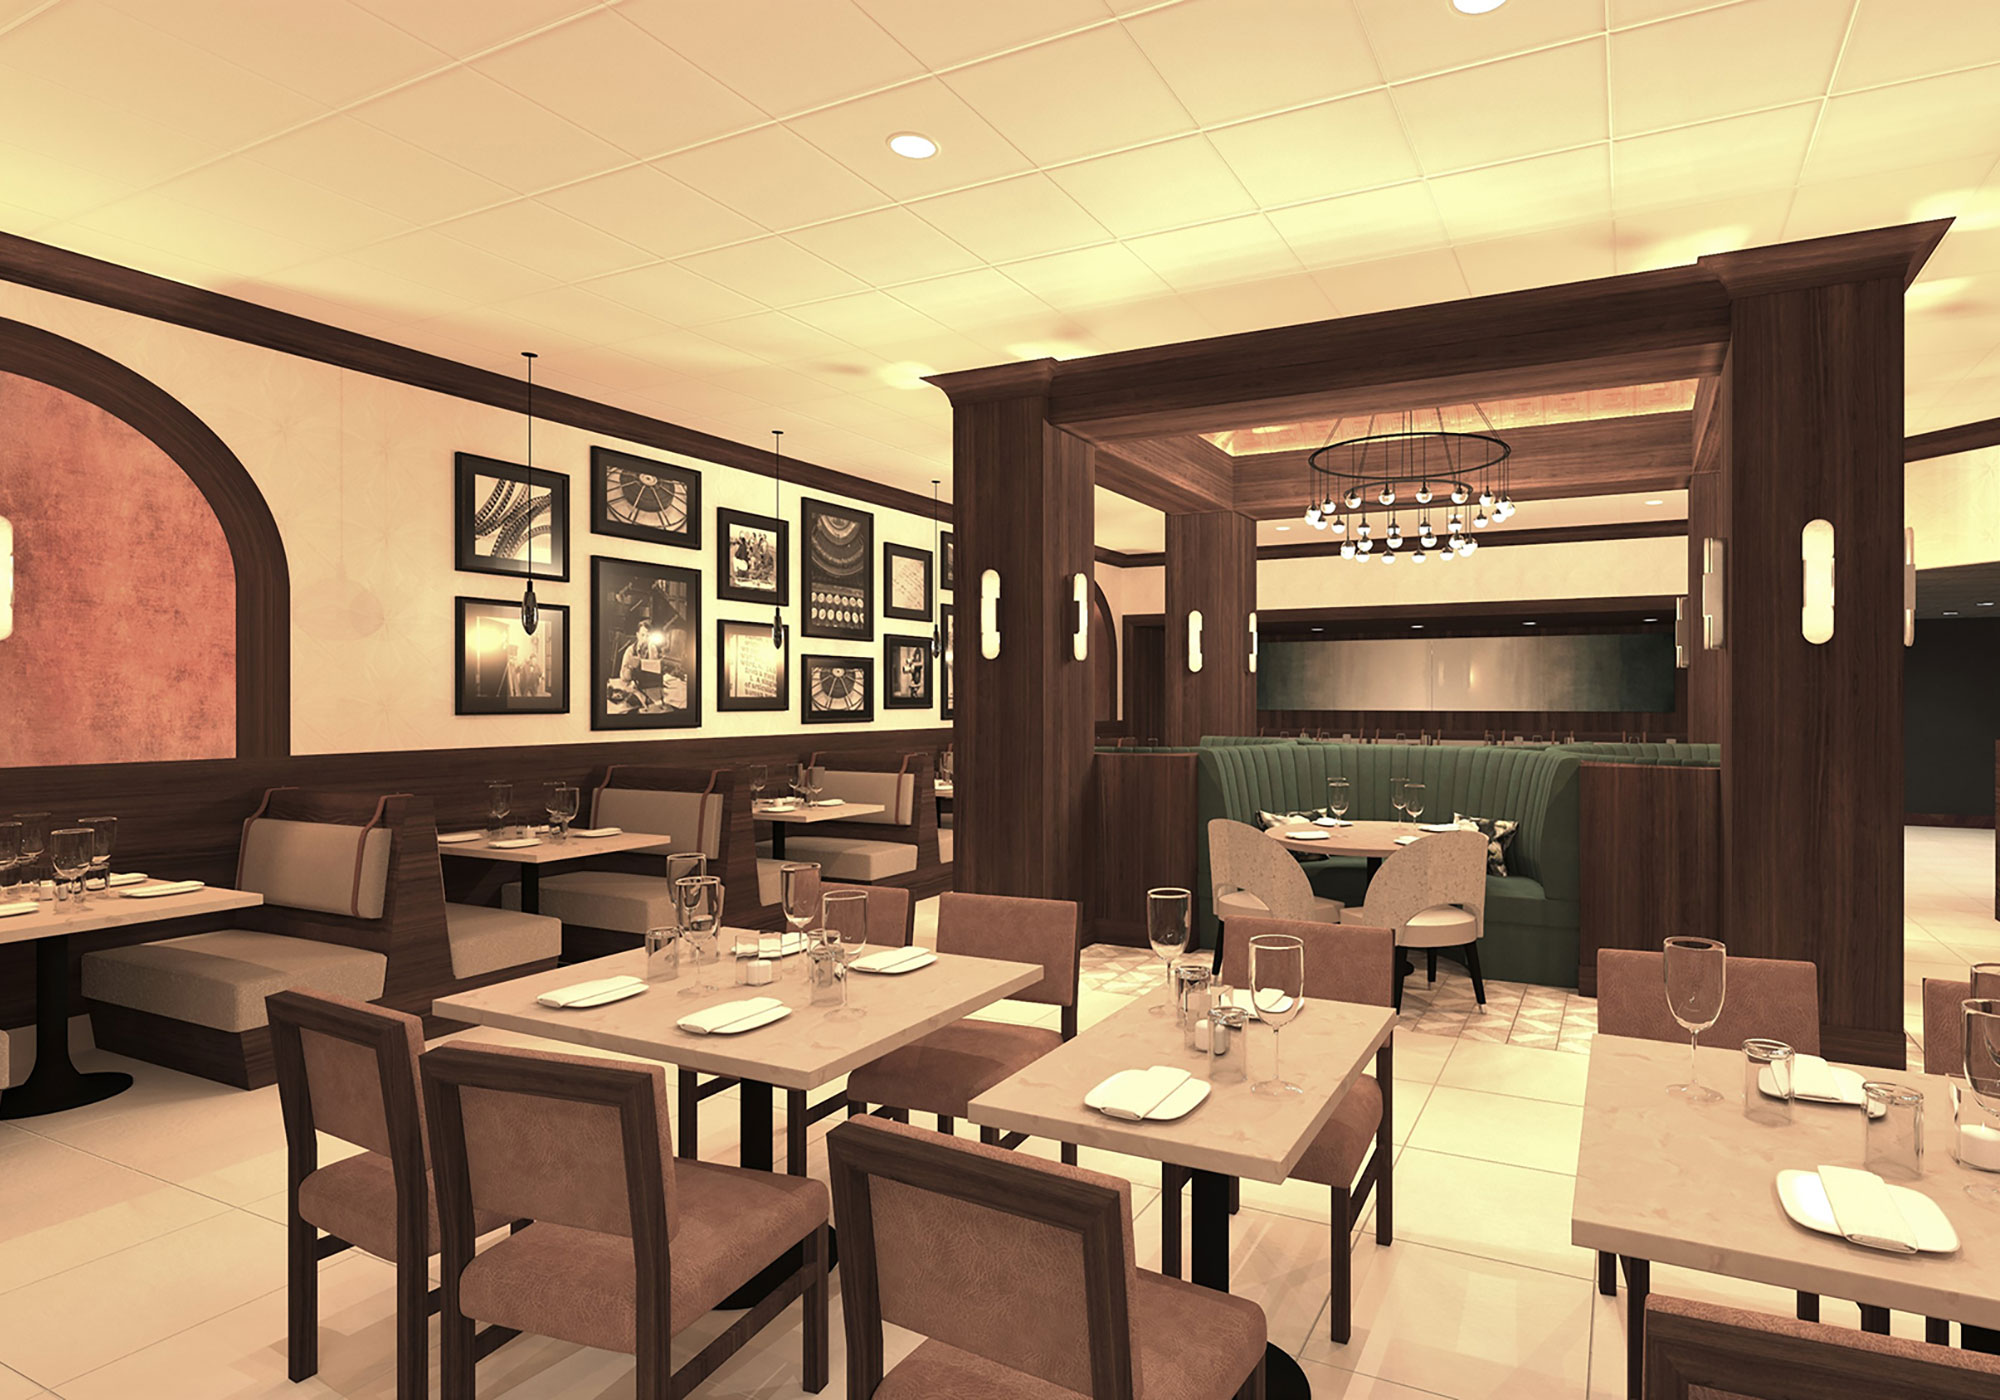 Dining area rendering with tables and booths